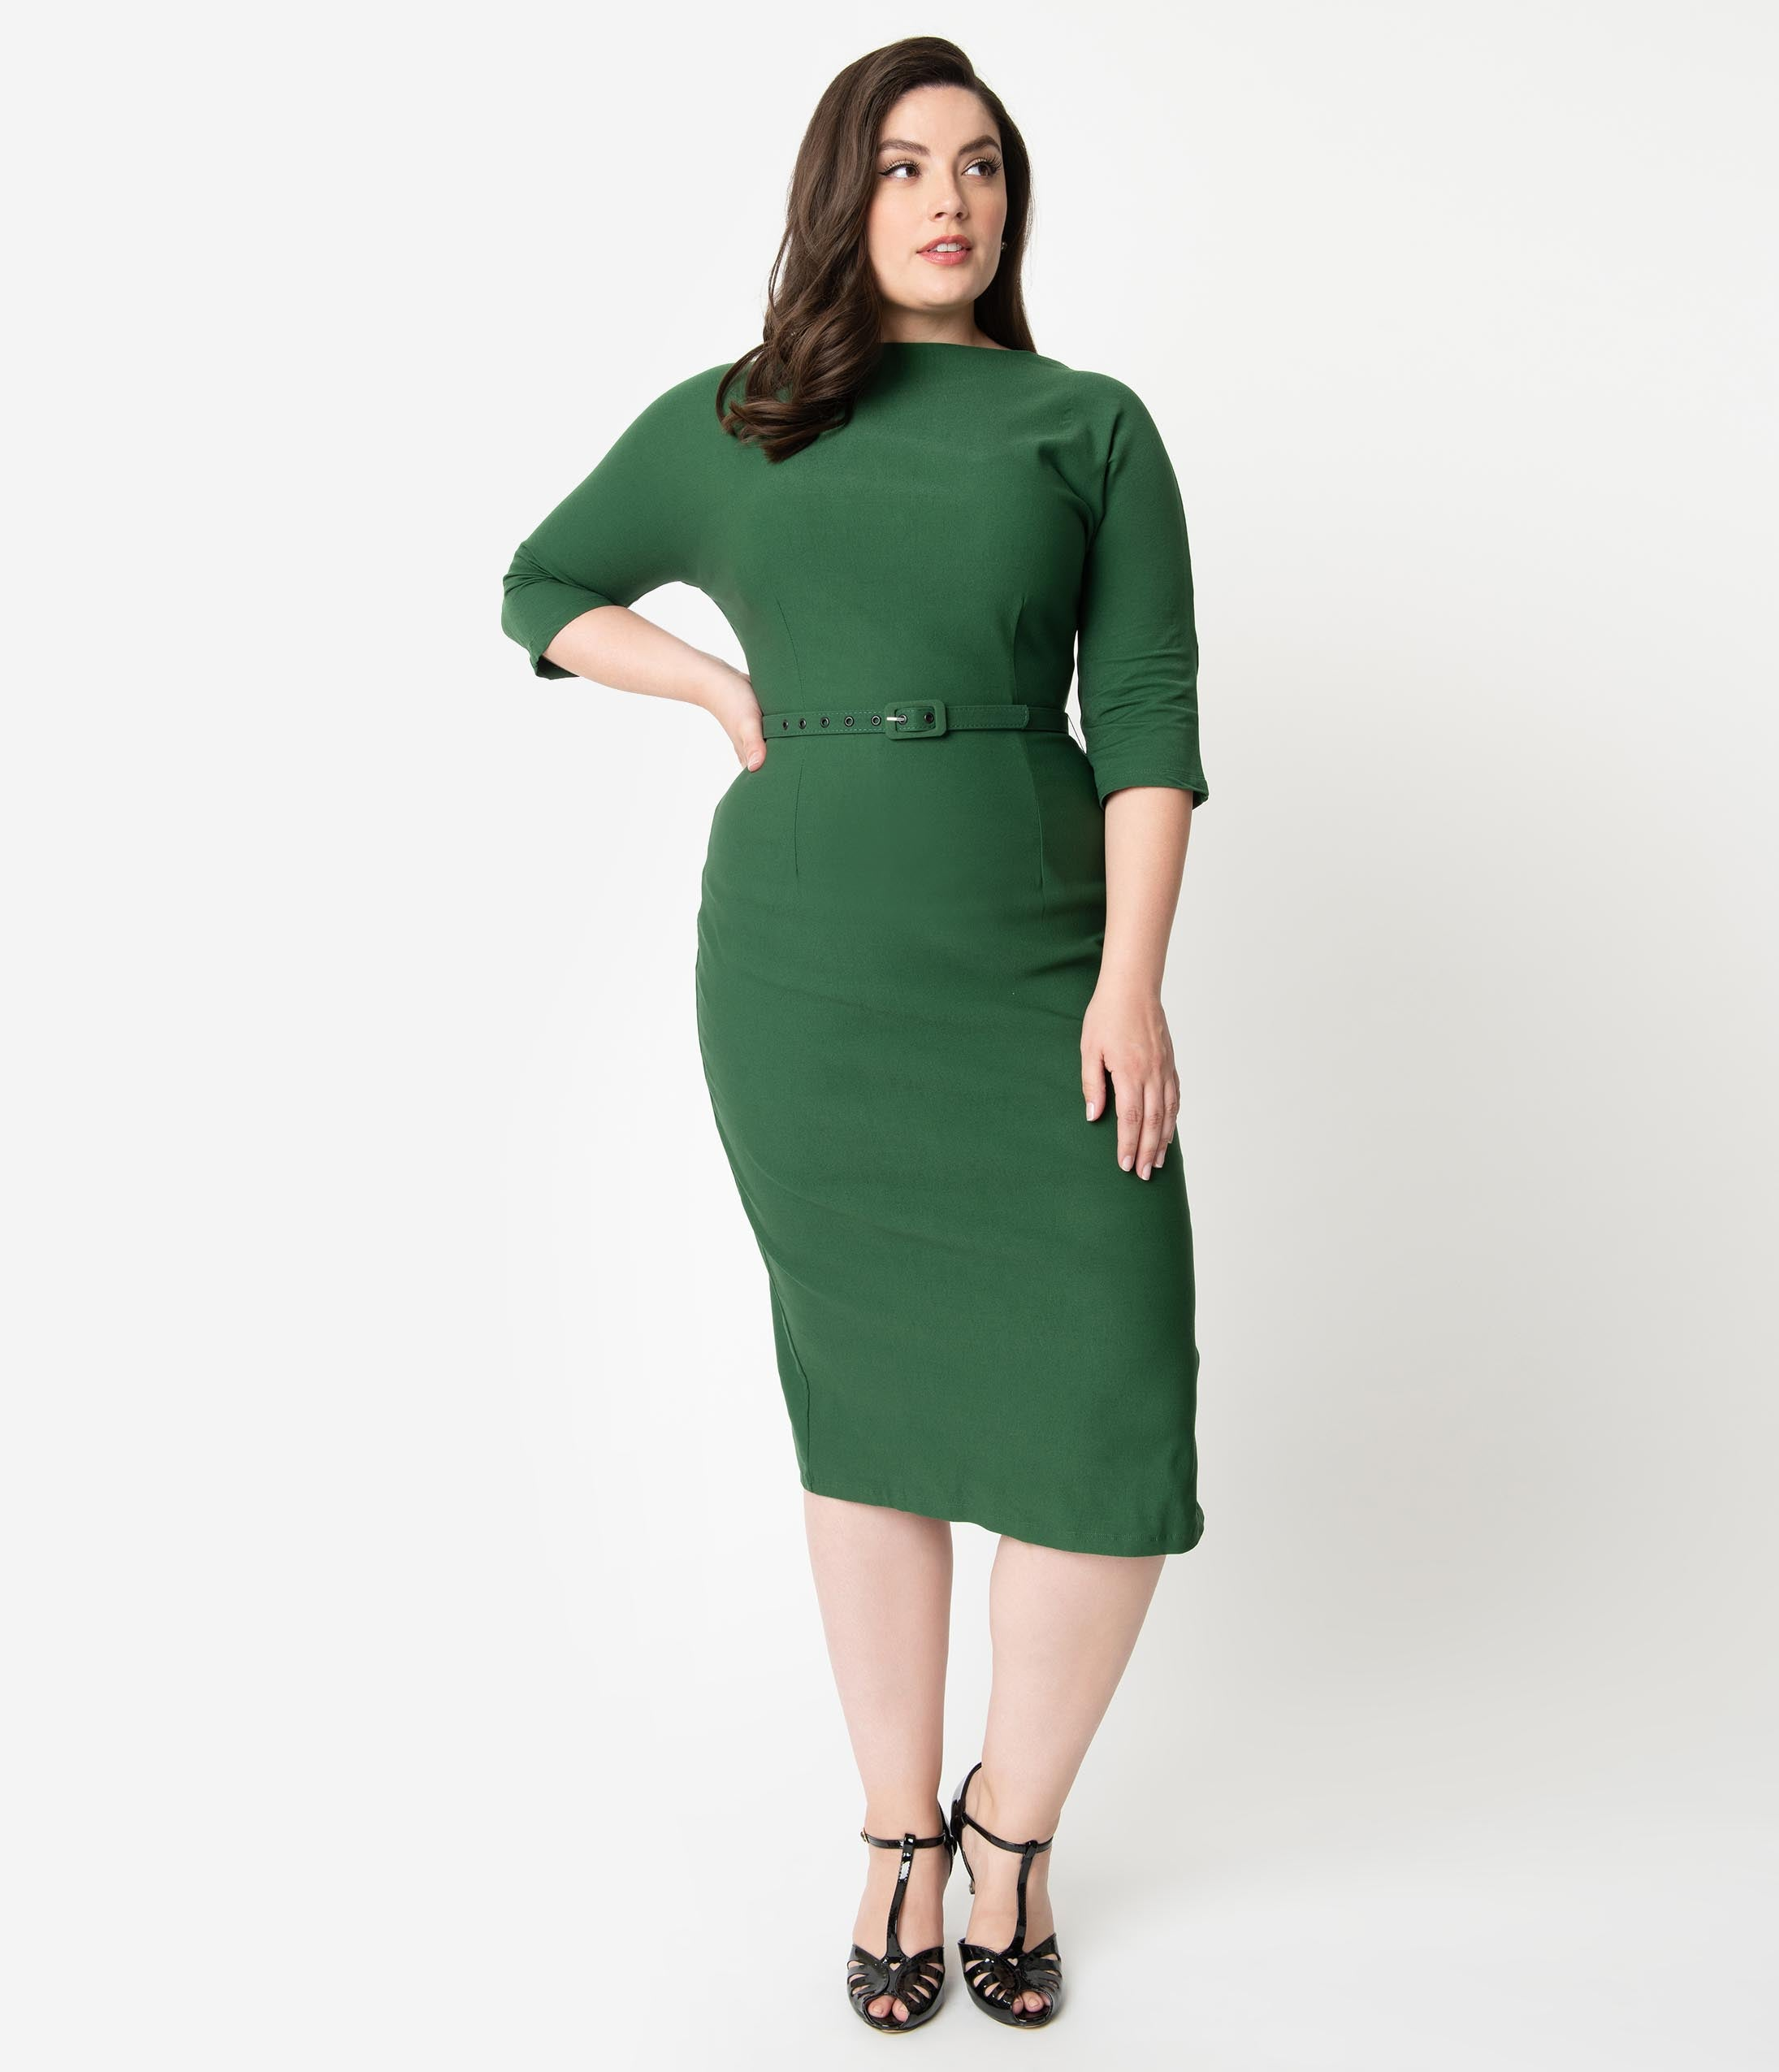 1950s Pencil Dresses & Wiggle Dress Styles Unique Vintage Plus Size 1940S Style Green Stretch Sleeved Adelia Wiggle Dress $98.00 AT vintagedancer.com